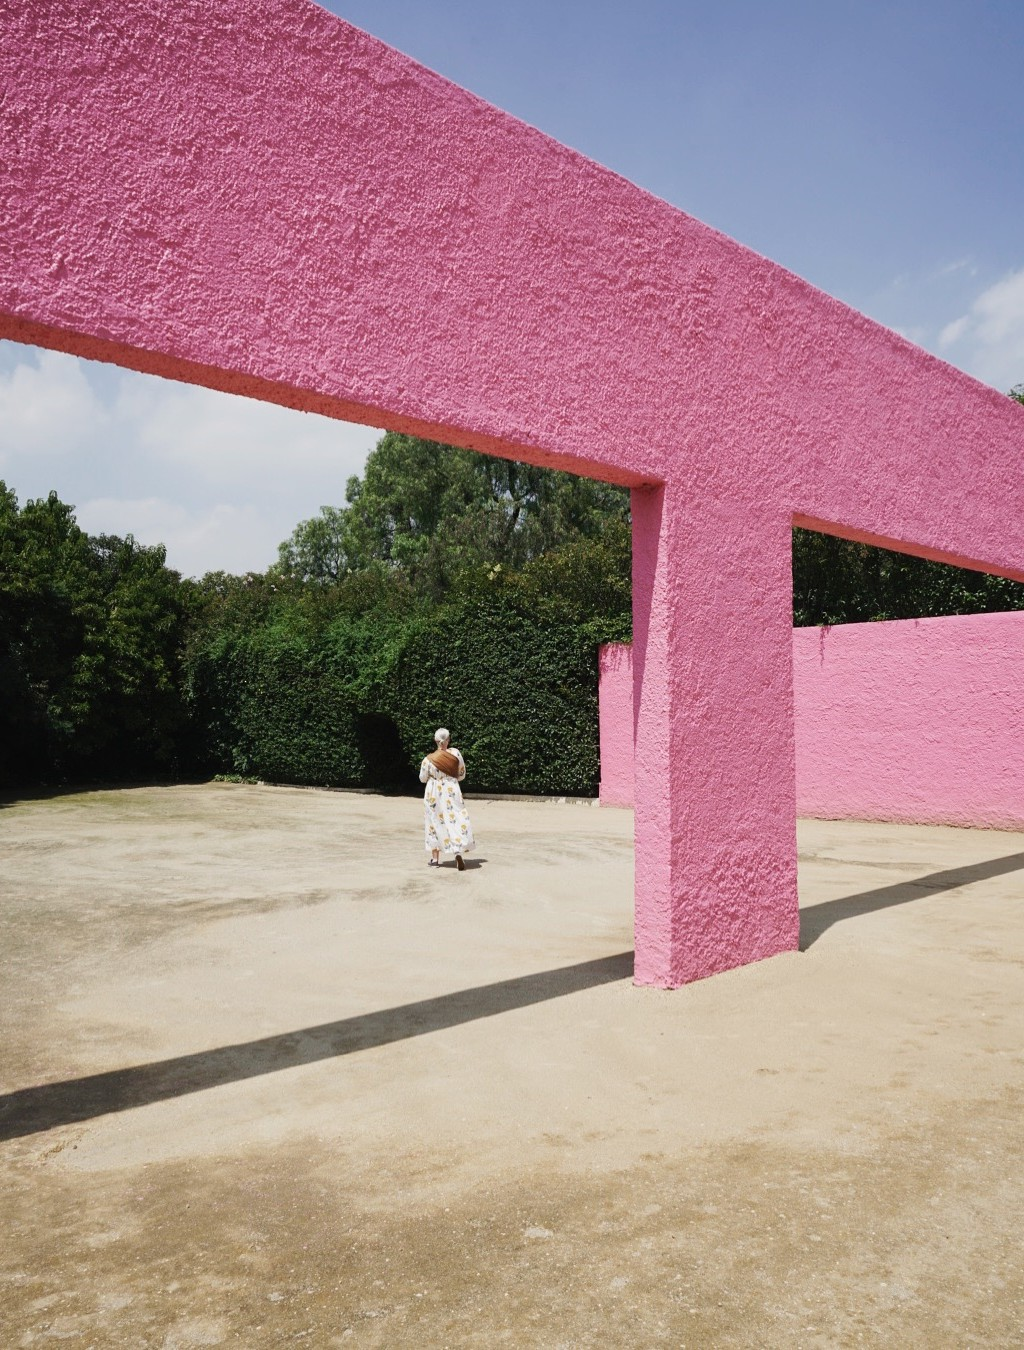 Brittany walks under a bright pink structure at Luis Barragán's San Cristobal stables in Mexico City